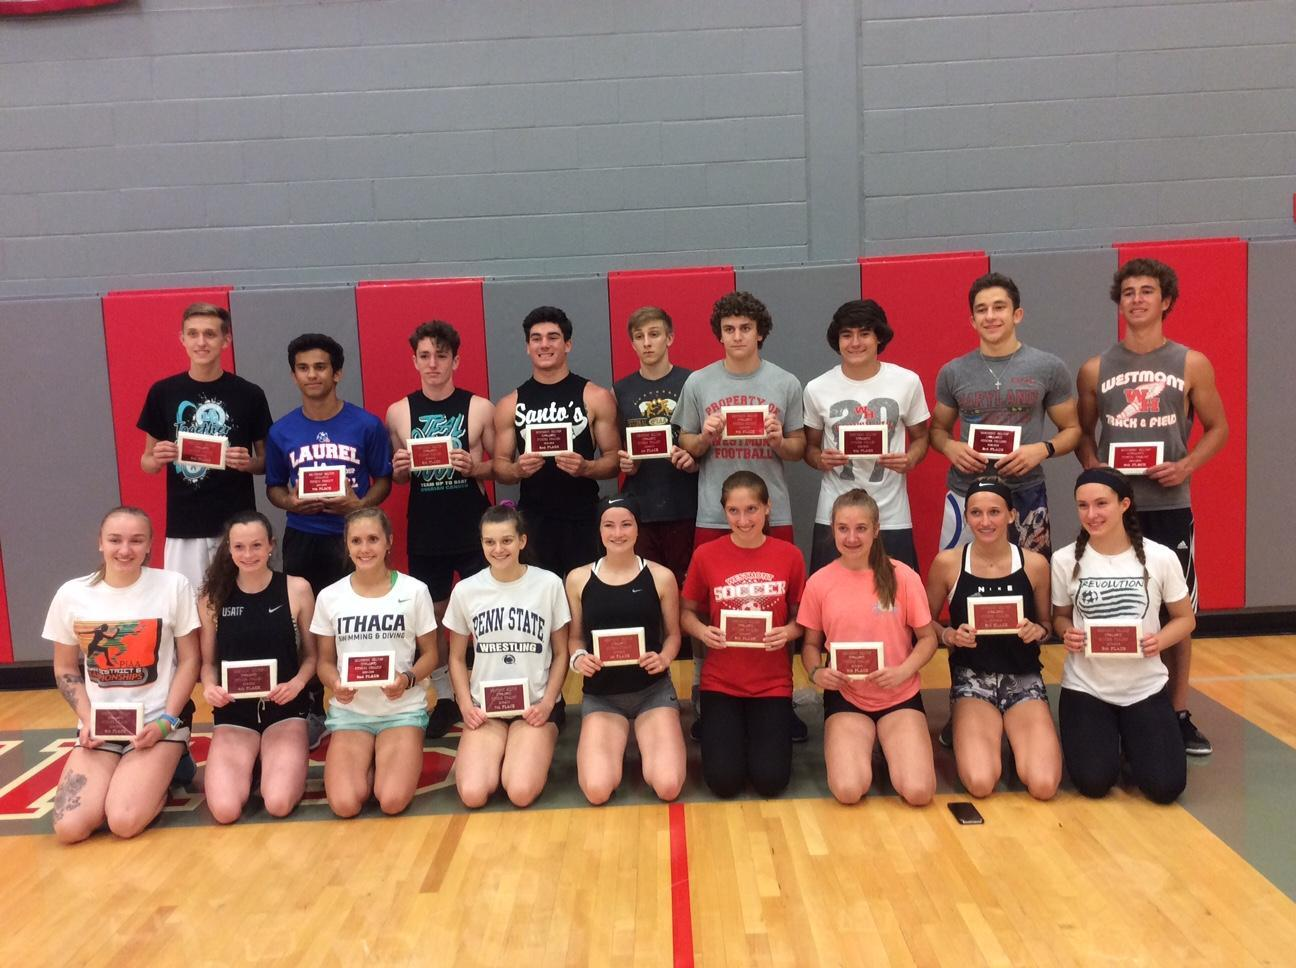 TOP 10 MALES/FEMALES IN FITNESS COMPETITION EVENT 2018-19